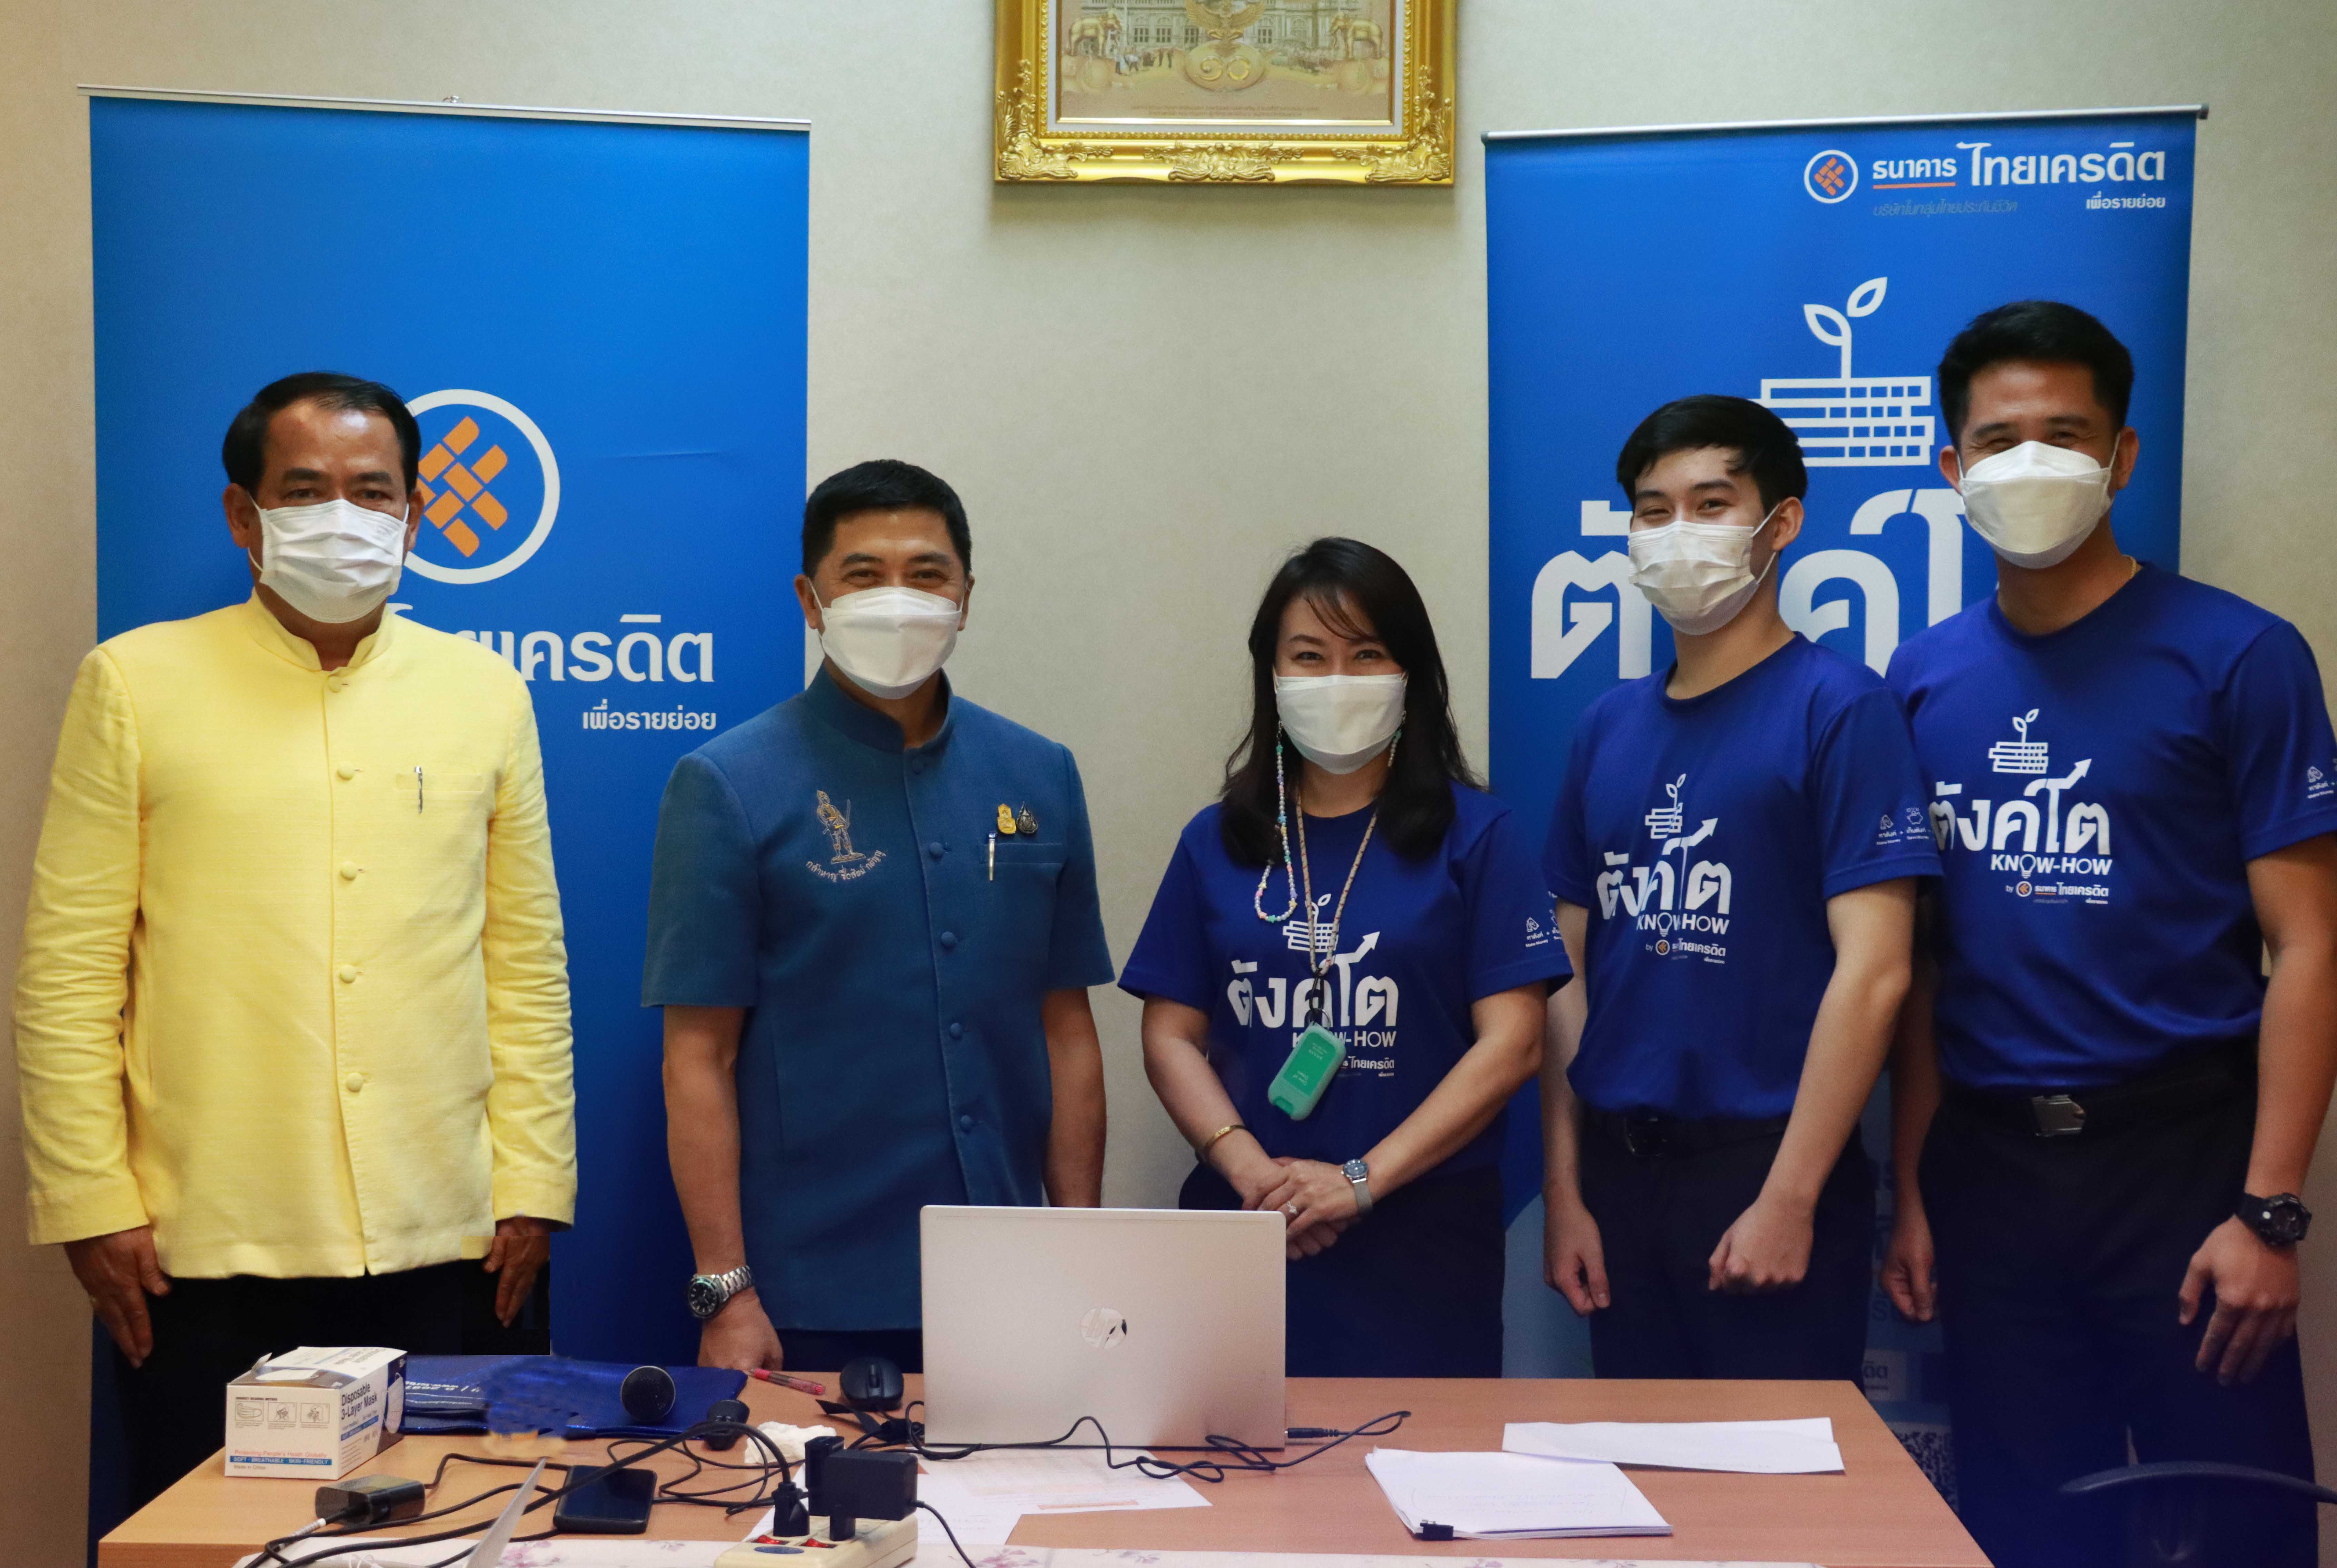 Thai Credit Retail Bank shares financial literacy with community officials online for the first time